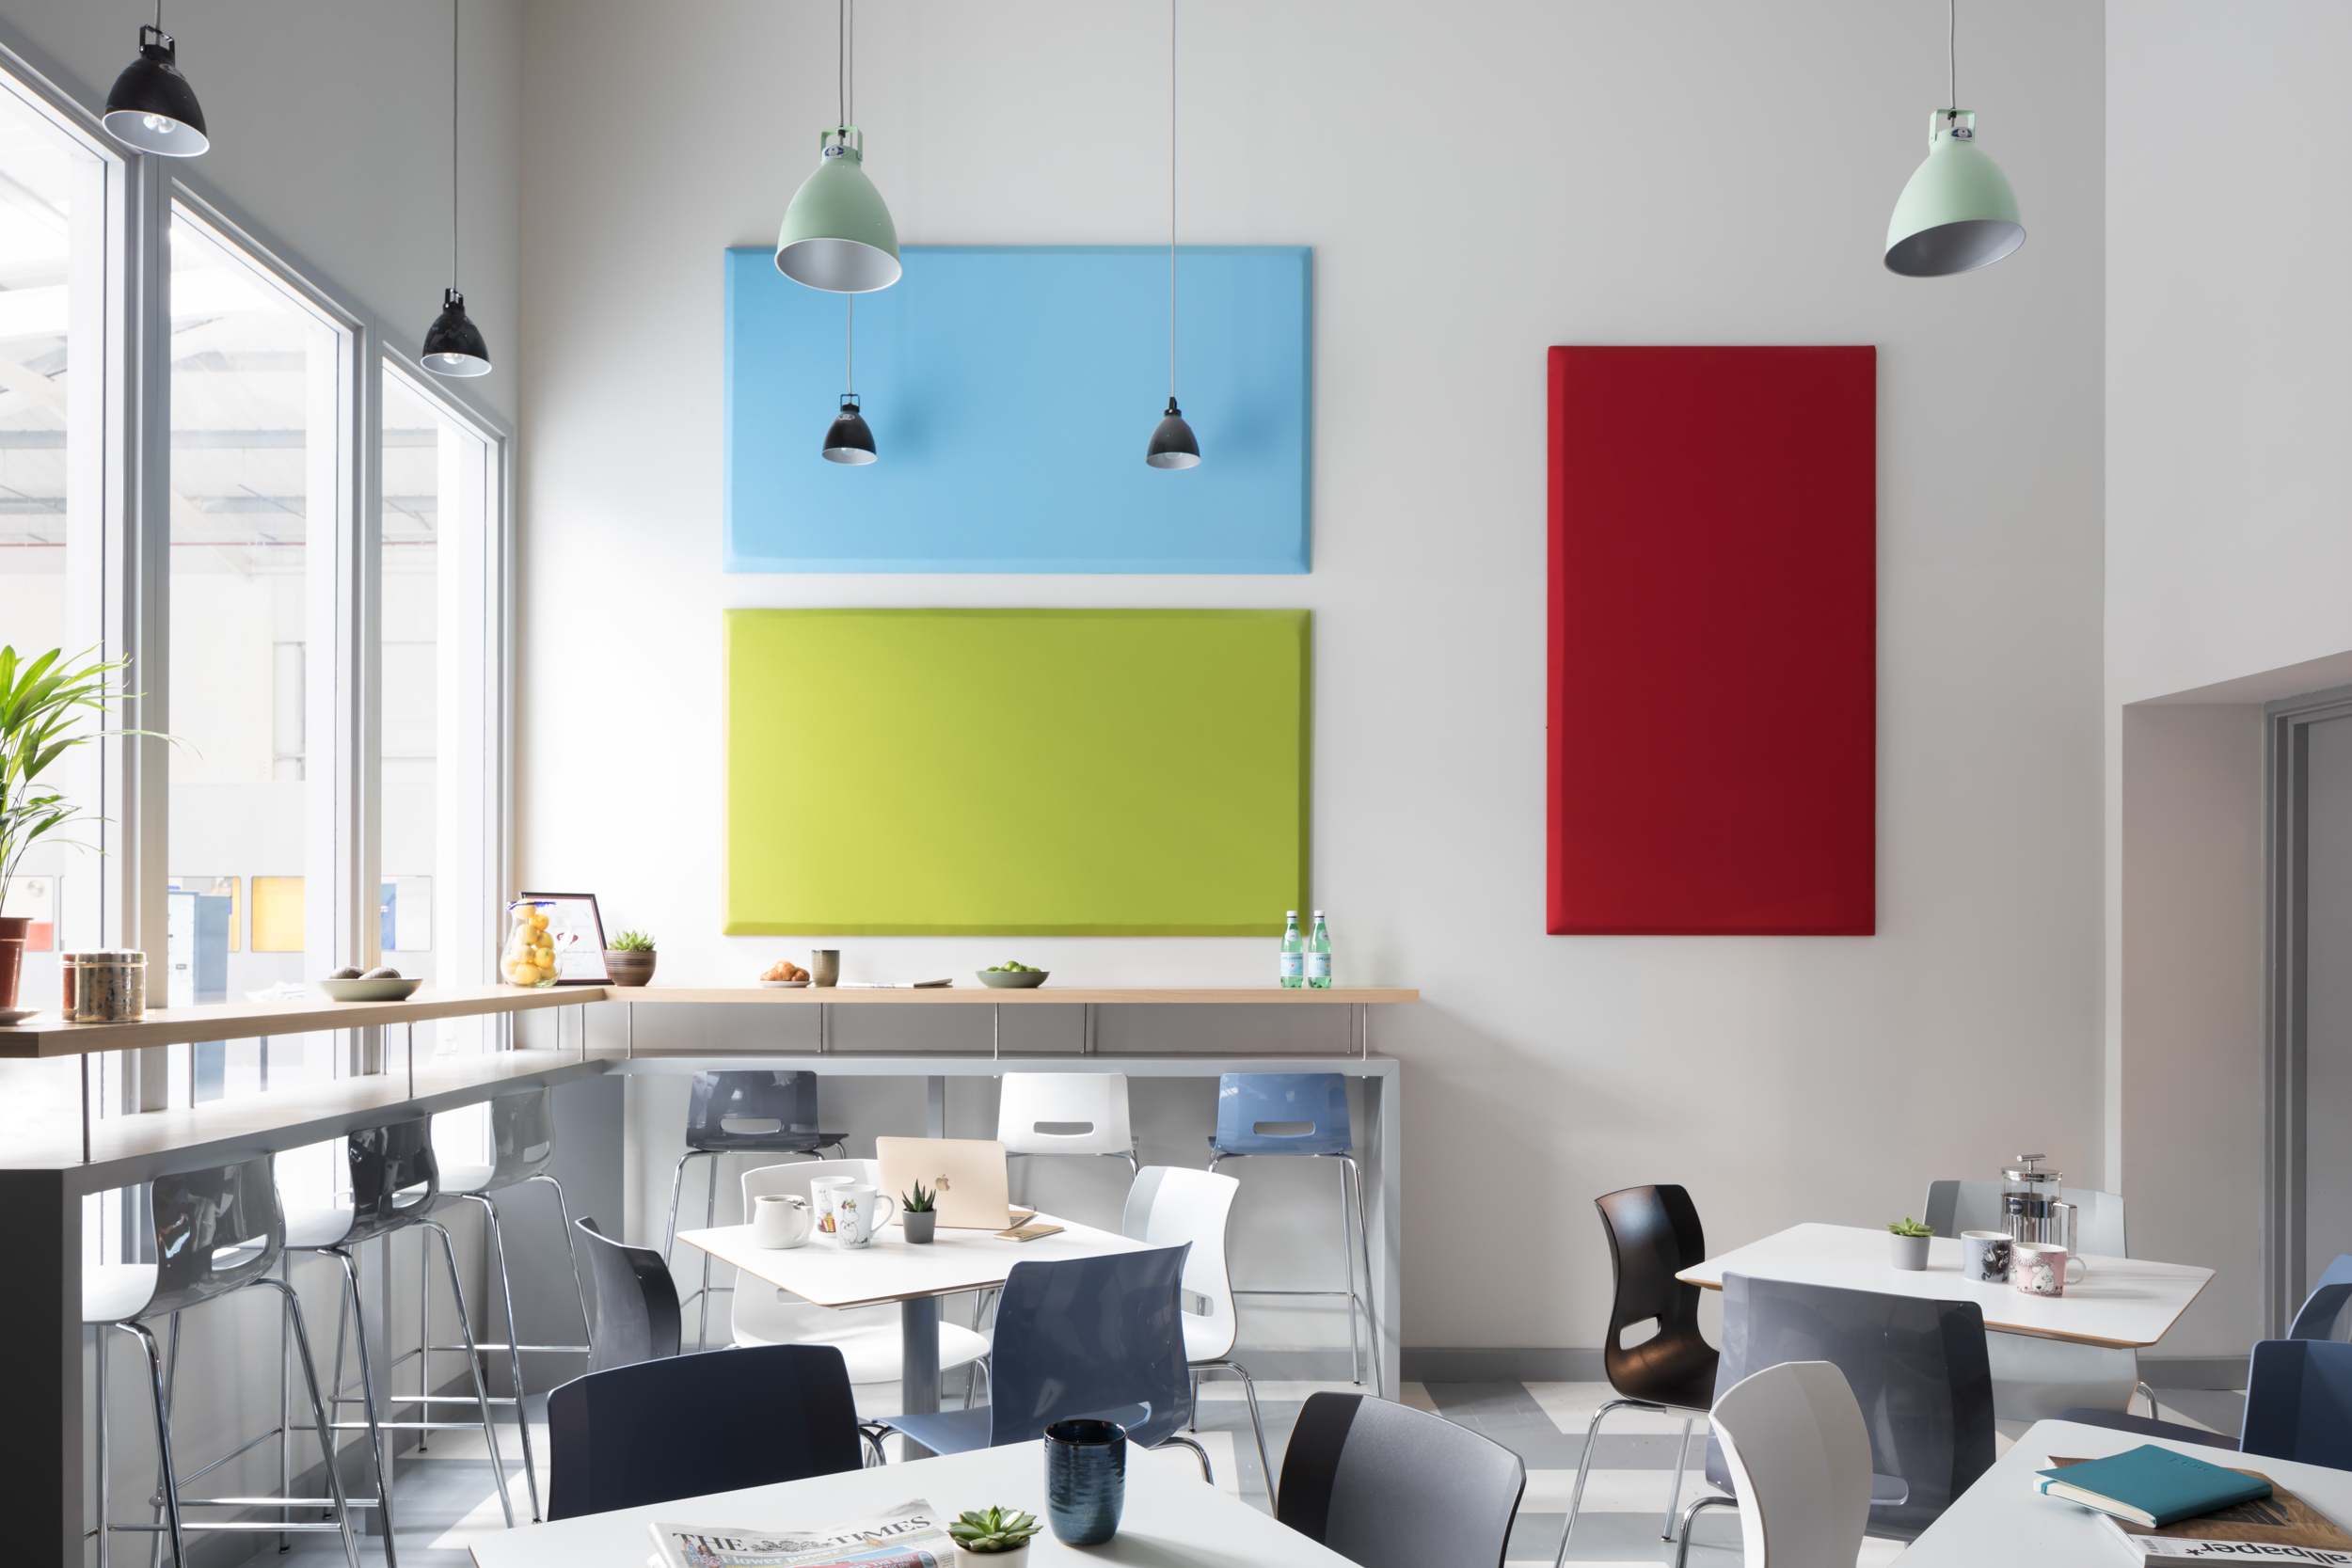 paul craig photographer, interior photography, office canteen commercial